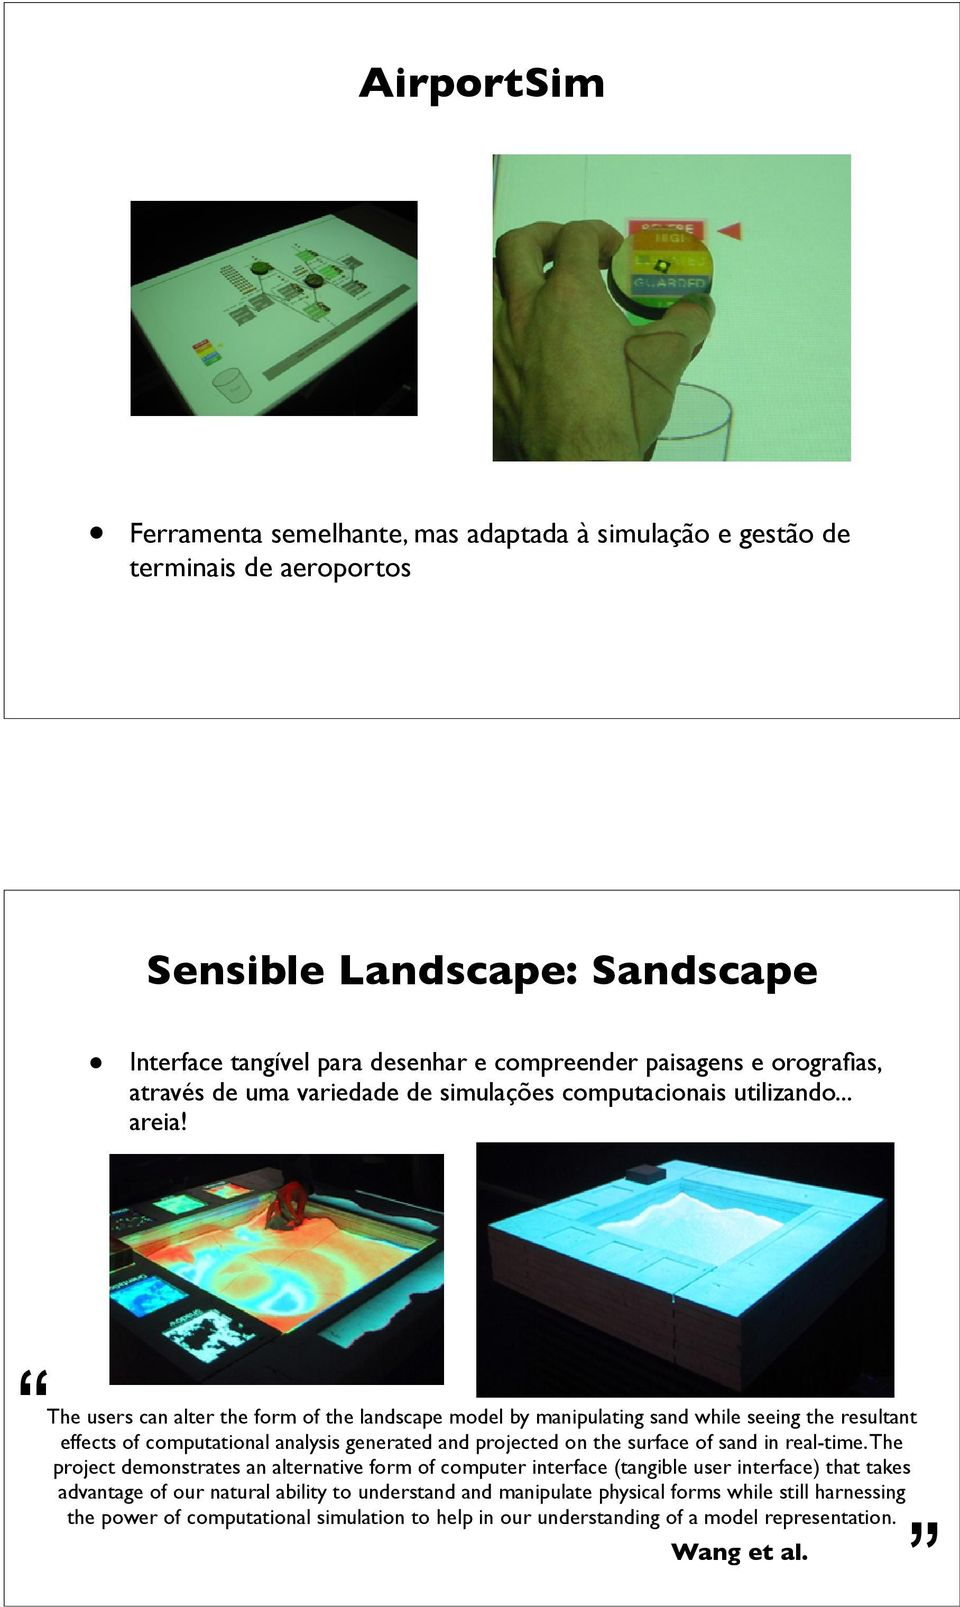 The users can alter the form of the landscape model by manipulating sand while seeing the resultant effects of computational analysis generated and projected on the surface of sand in real-time.